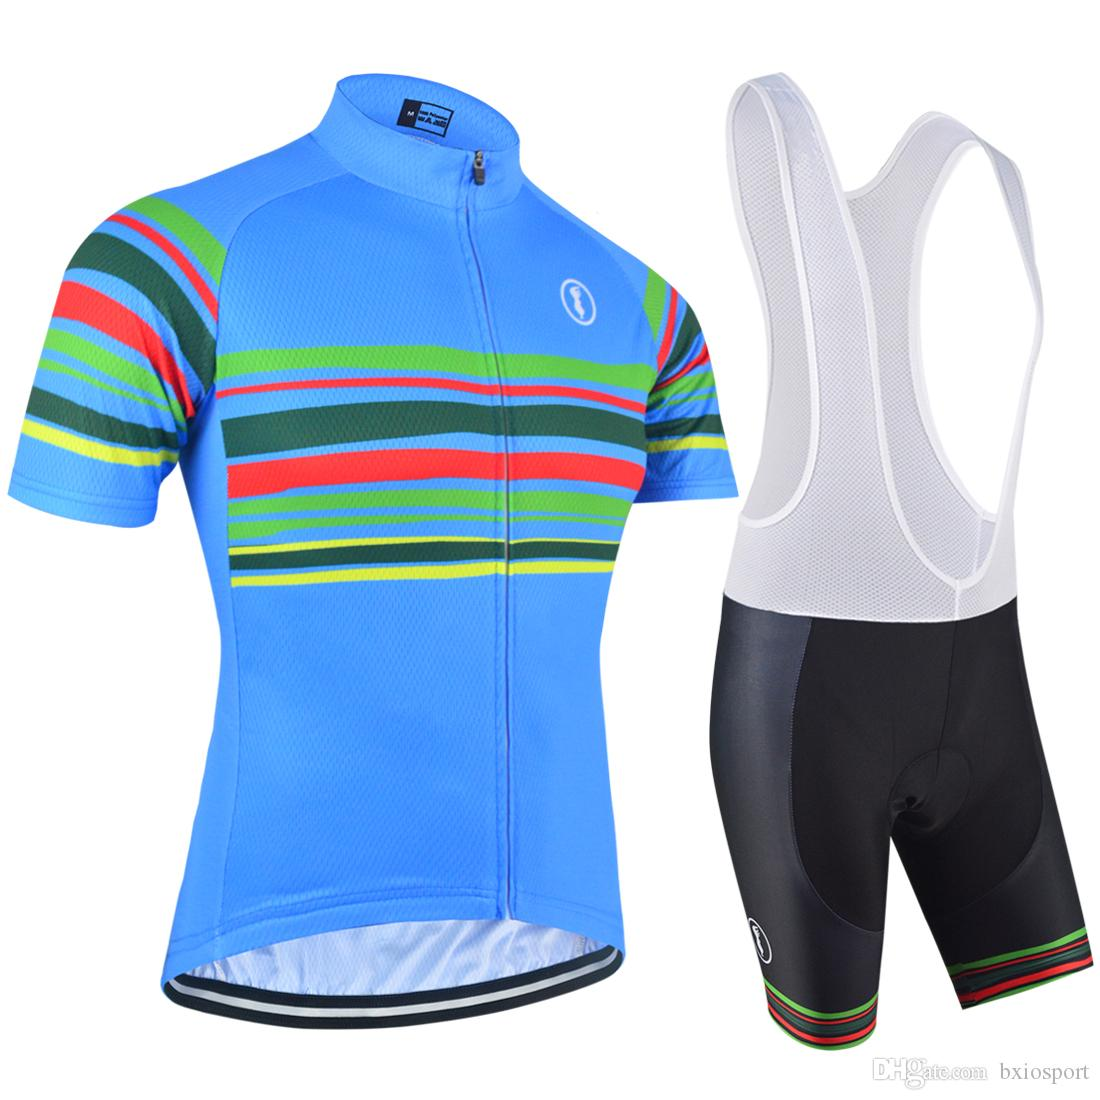 2017 New Design BXIO 3D Gel Pad Cycling Jerseys Bike Sport Wear Clothes  Summer Short Sleeve Bicycle Clothing Breathable Ropa Ciclismo BX 151 Bike  Wear ... 9b91aa15f